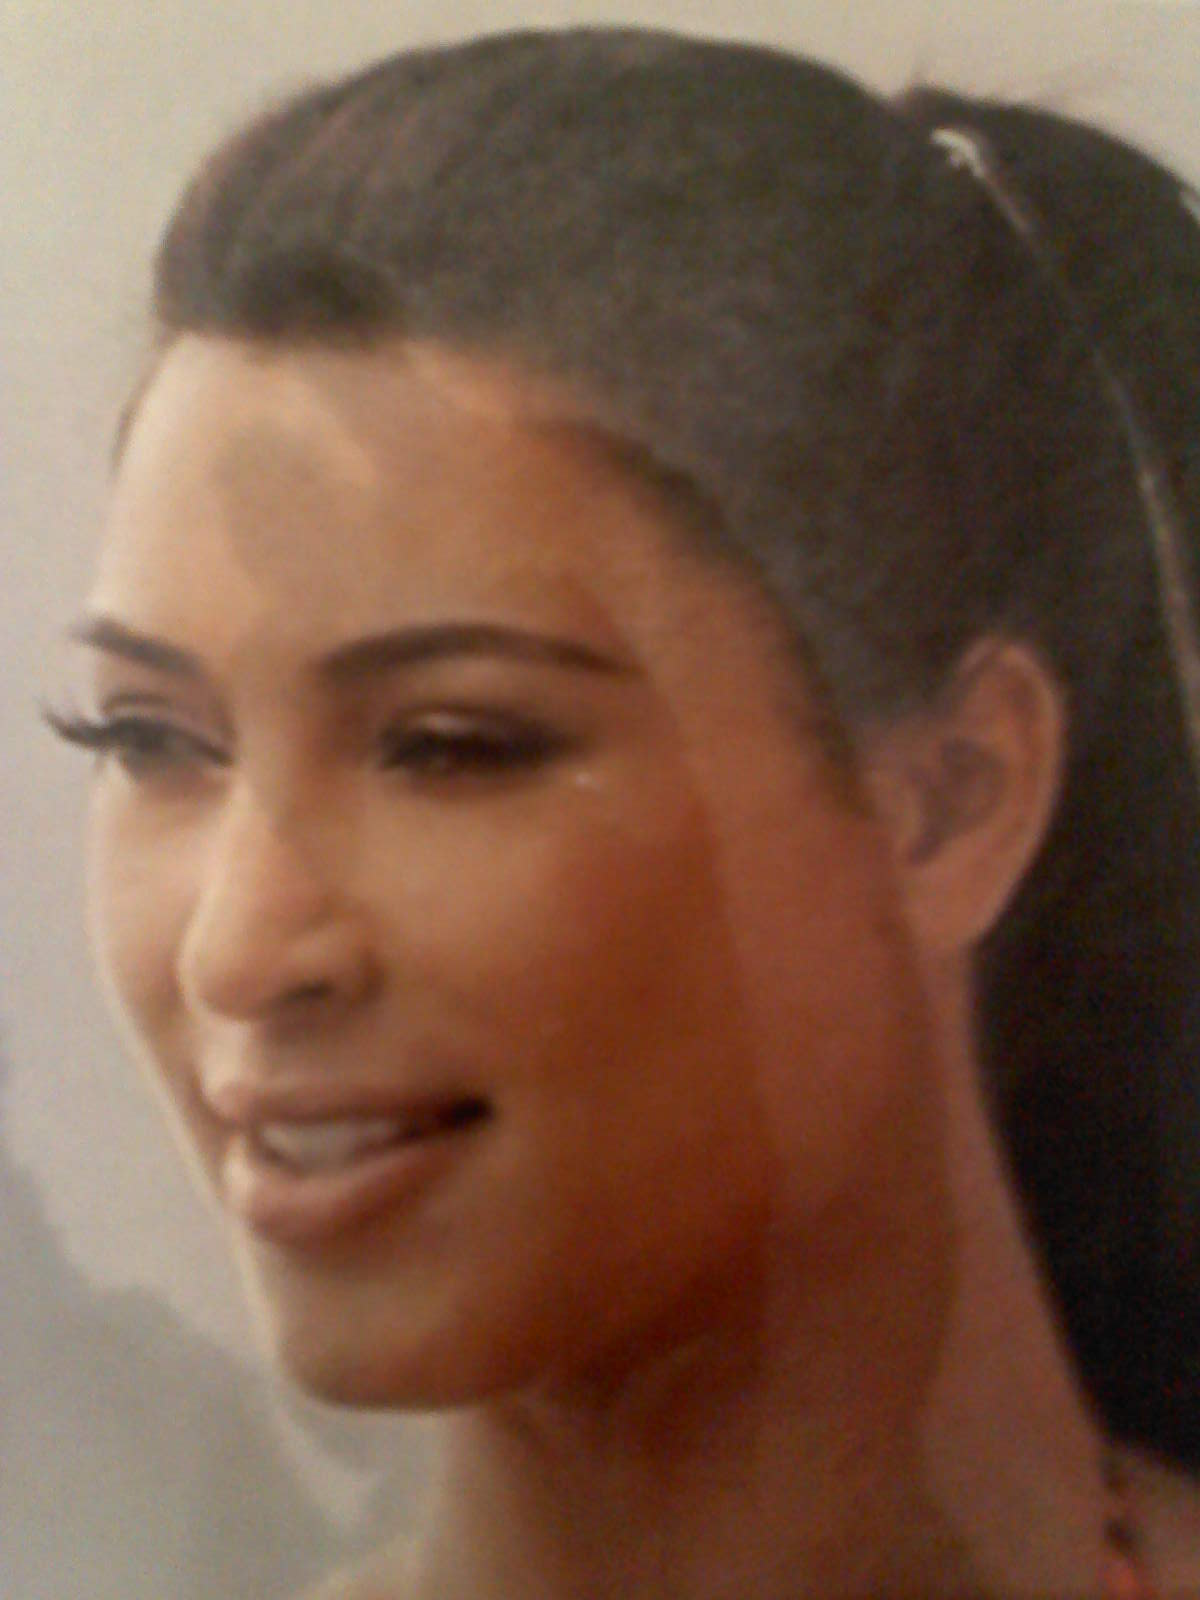 Kim Kardashian After face 1.jpg